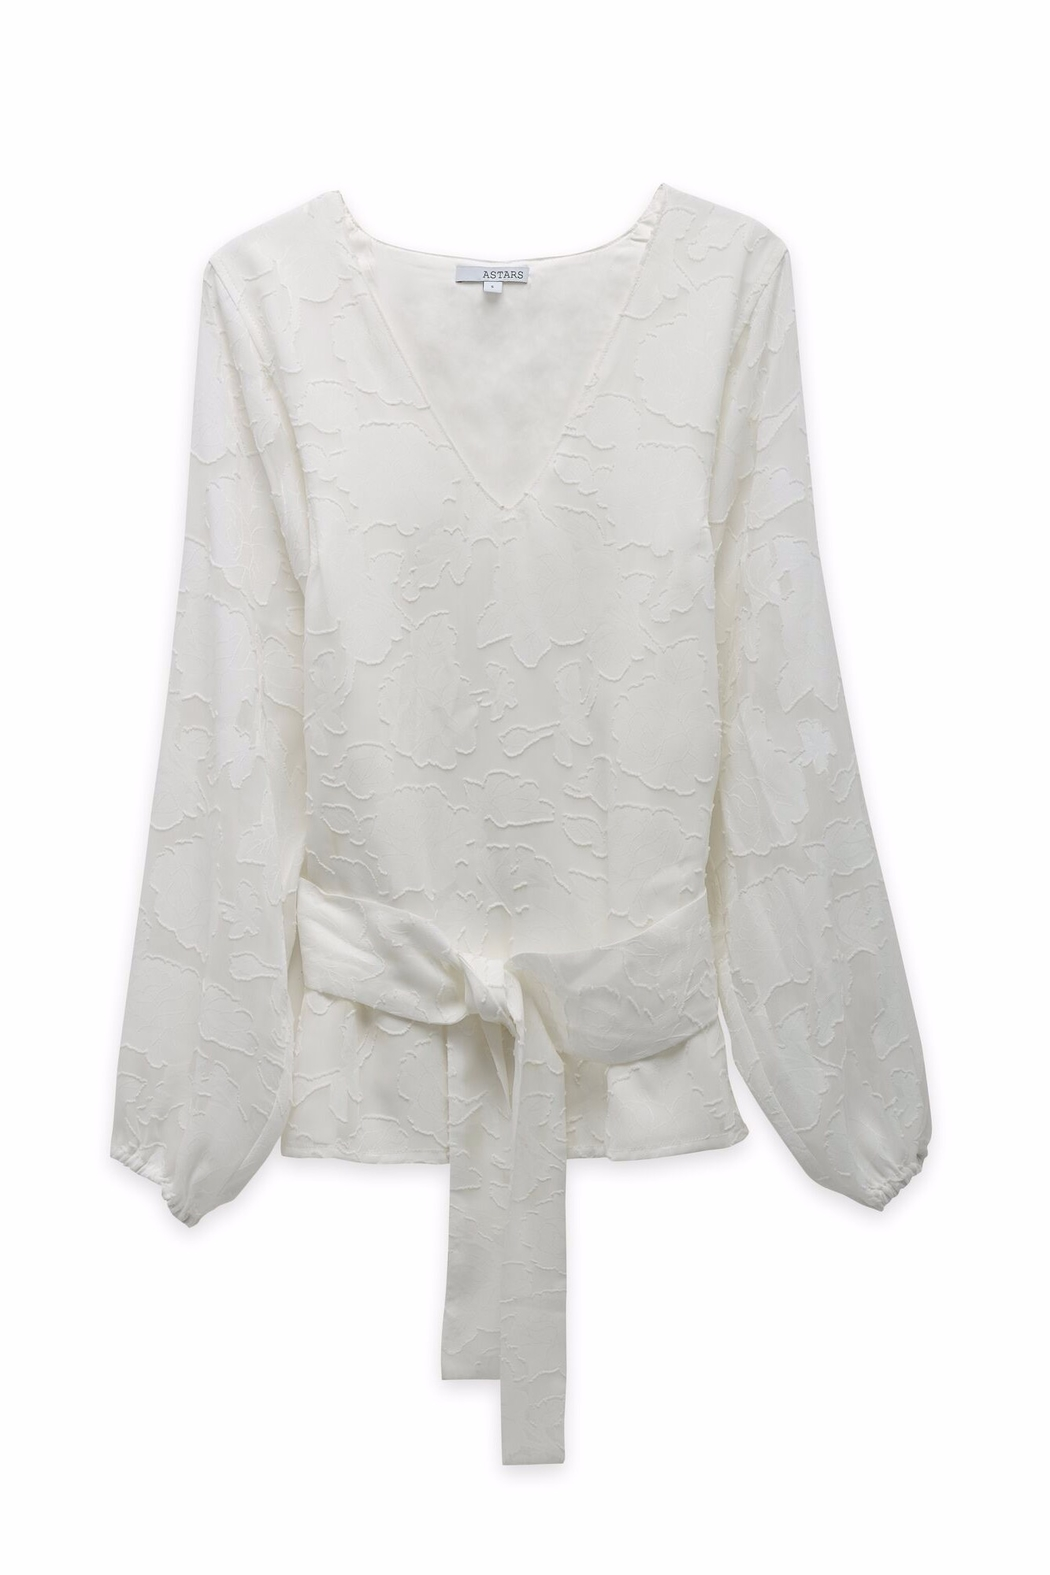 Astars Marquette Blouse - Side Cropped Image